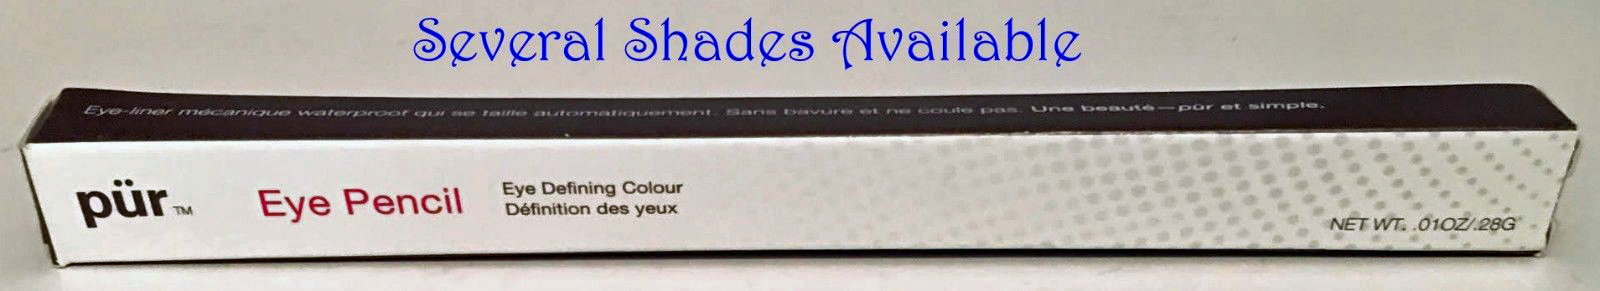 Pur Minerals Eye Defining Eye Pencil with Smudge Tip .01 oz (Several Shades) 14571